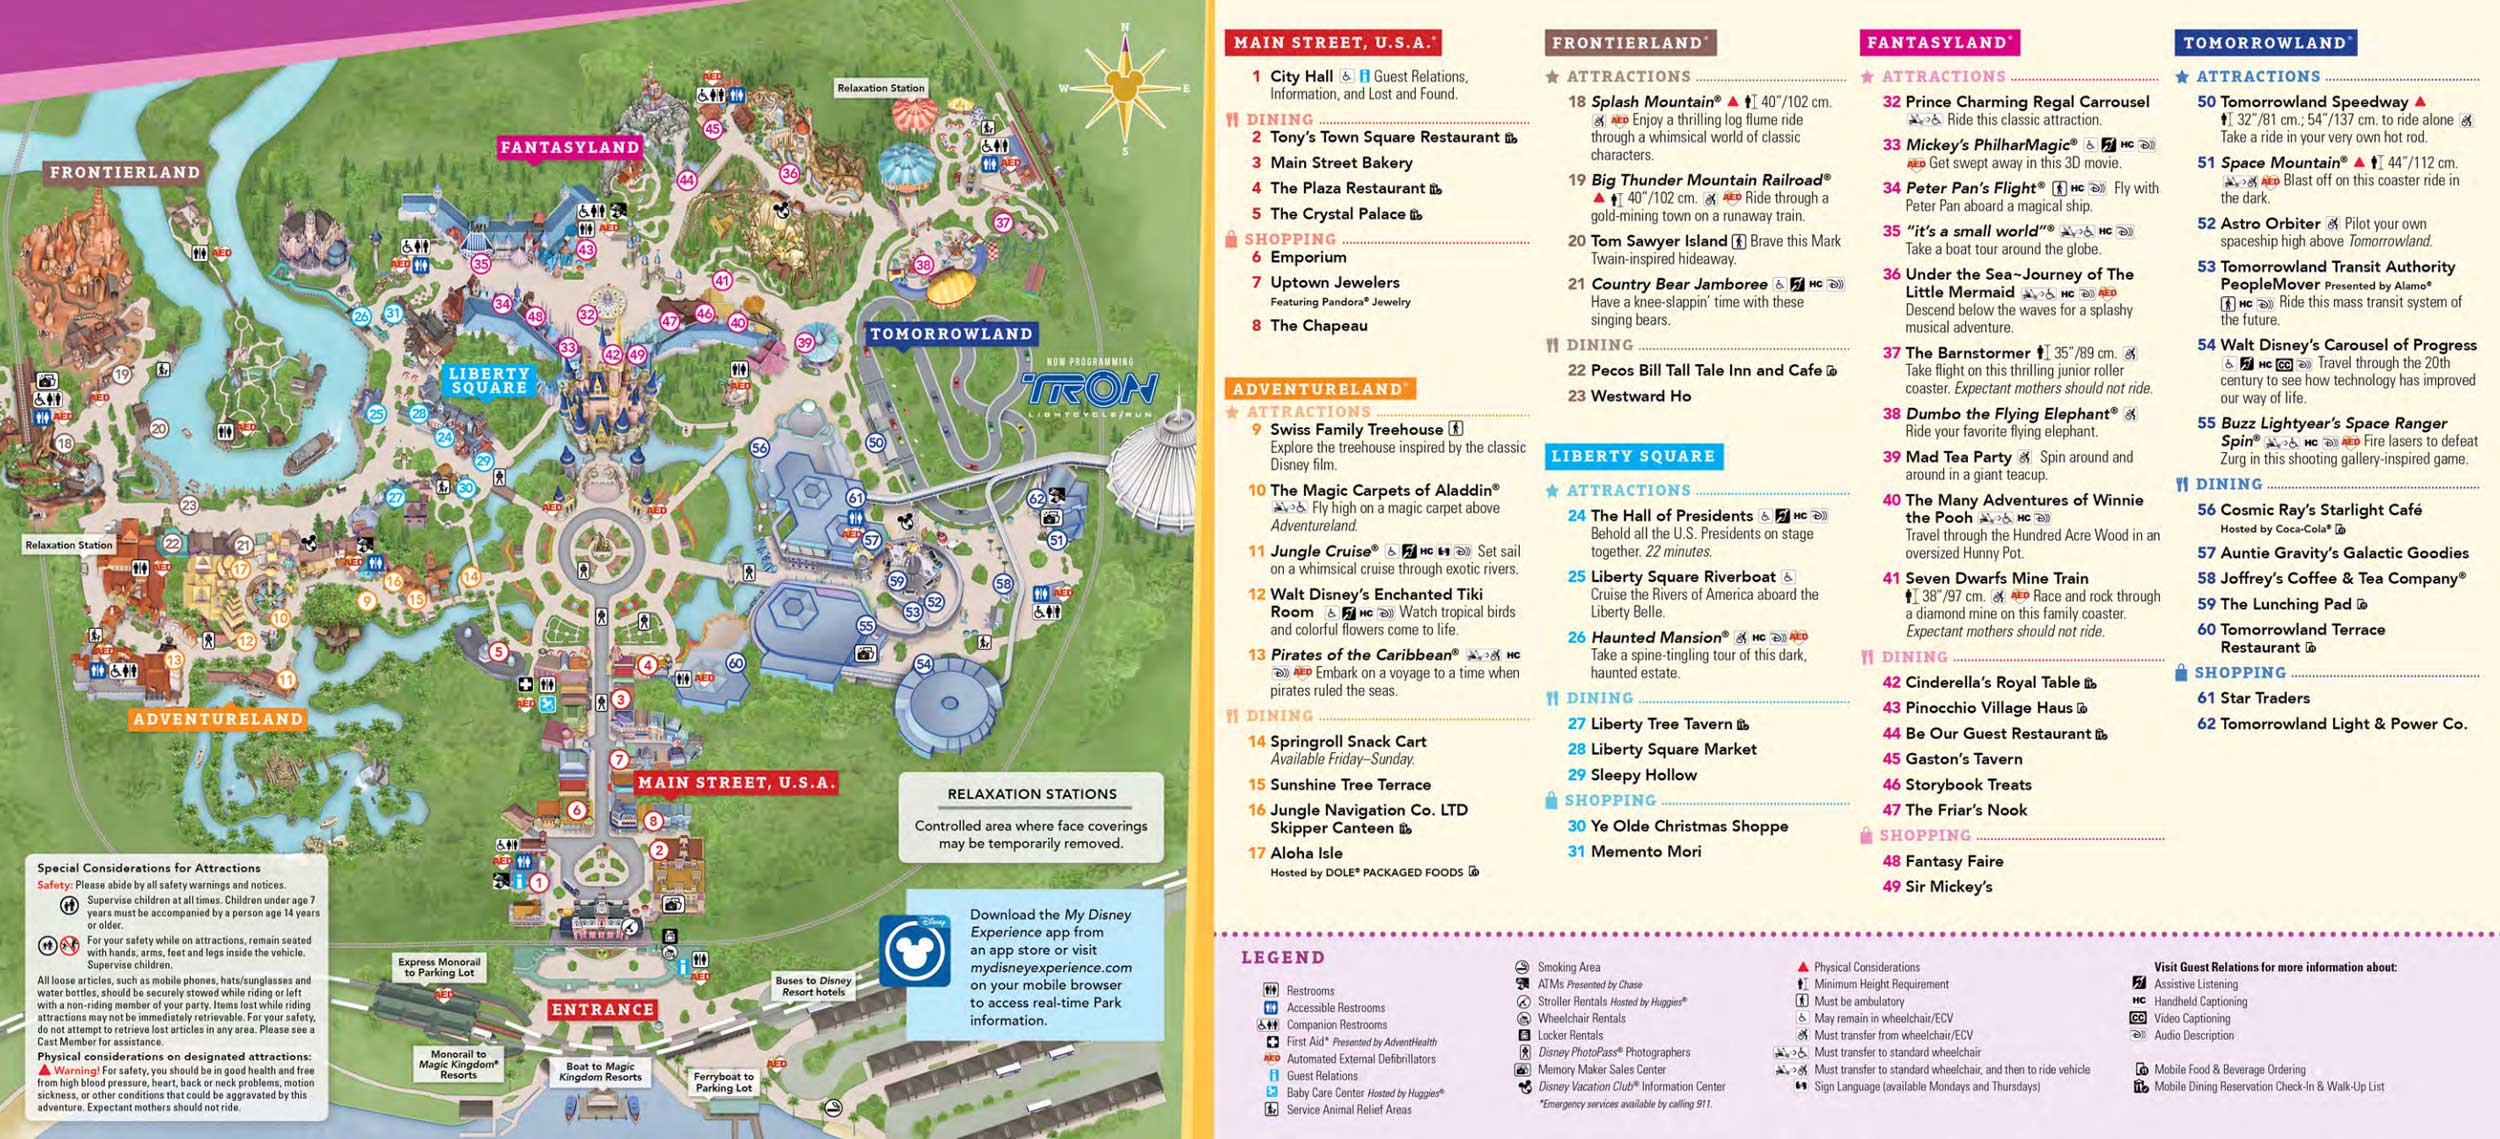 image about Printable Magic Kingdom Map called Magic Kingdom Park Map - Walt Disney Earth